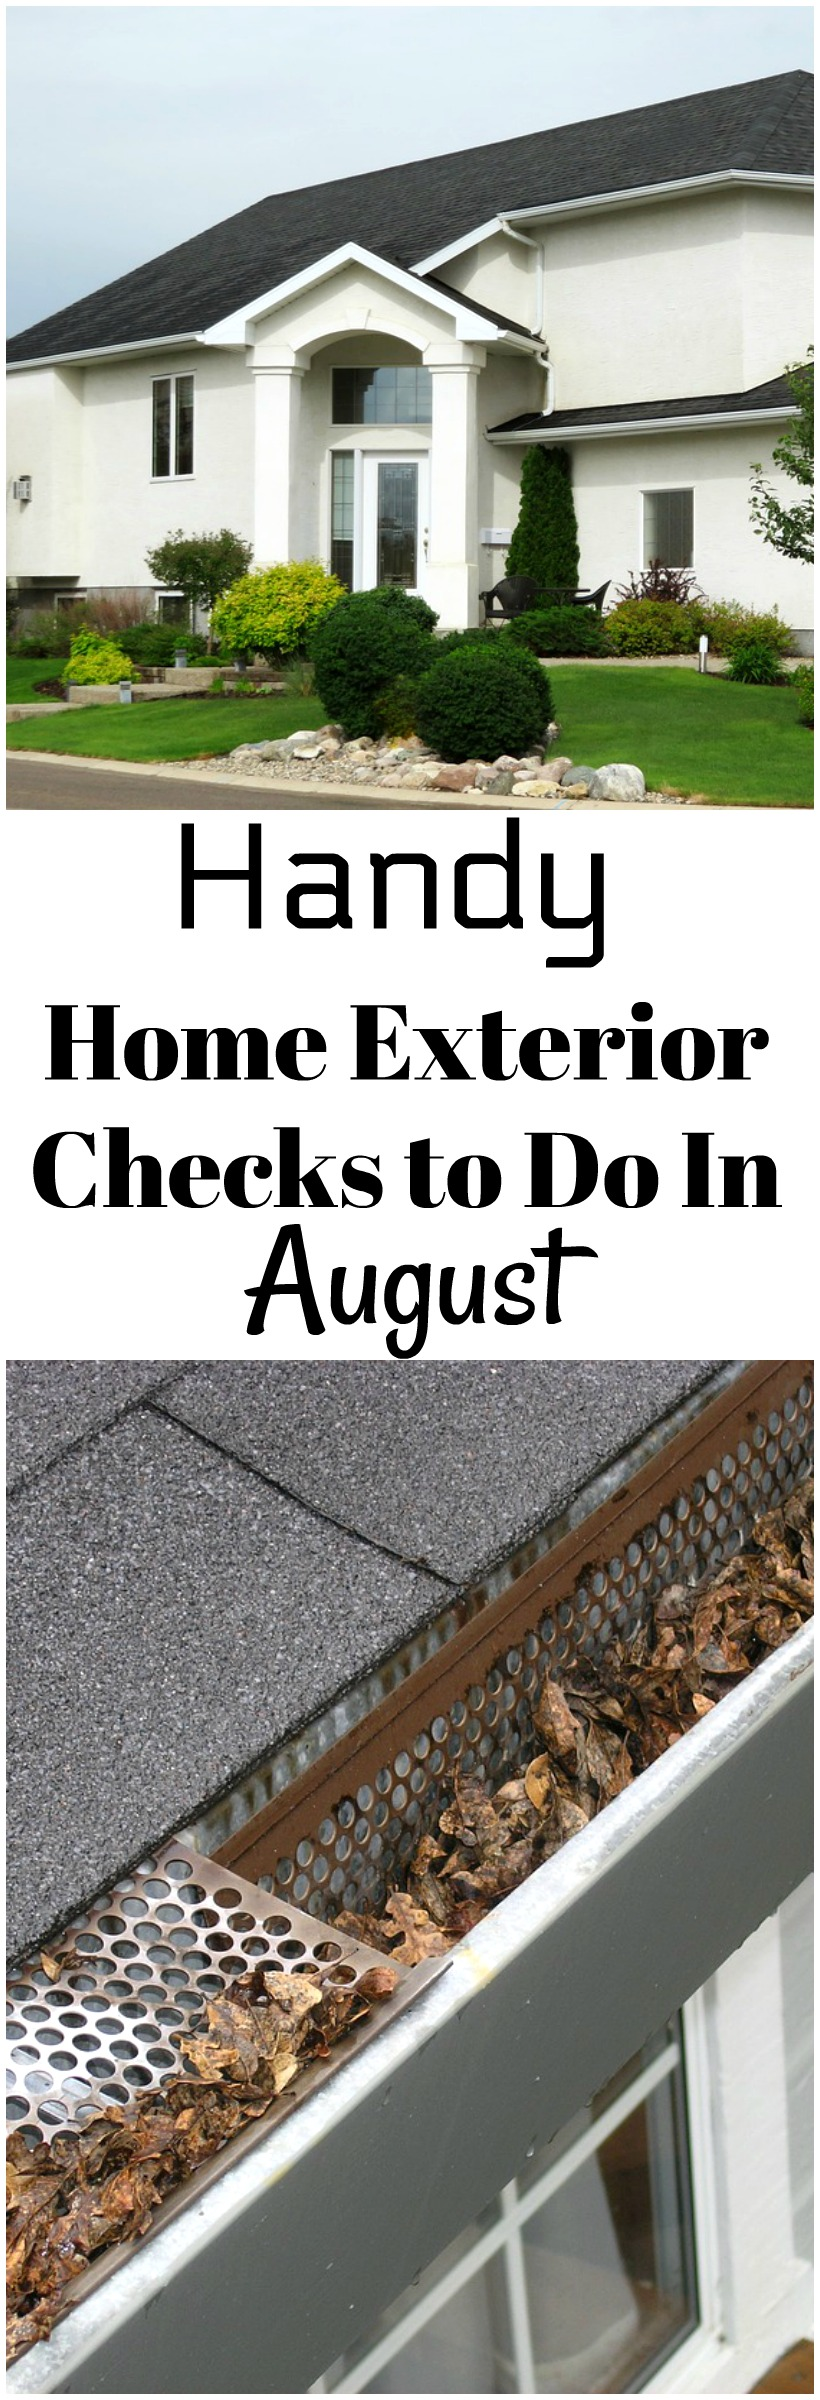 Handy Summer Exterior Home Checks to Do in August